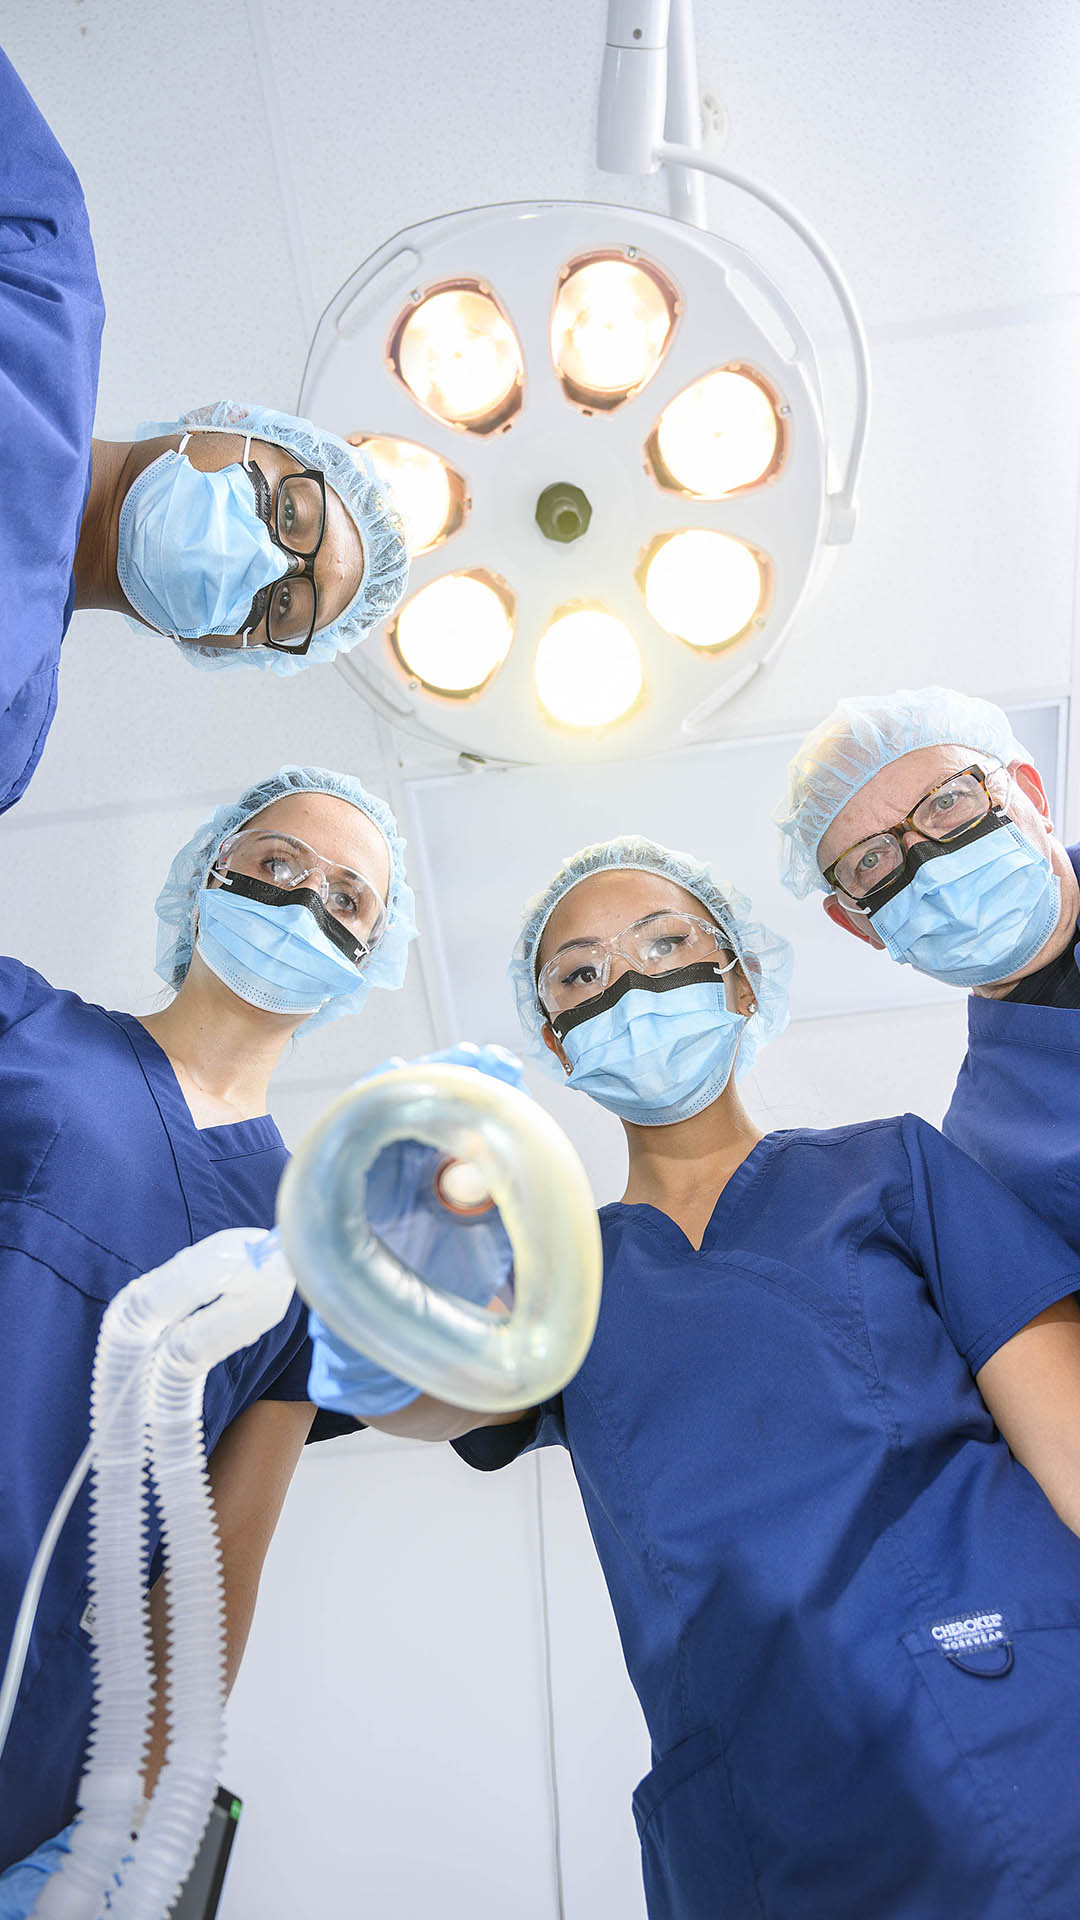 CRNA Students with Mask